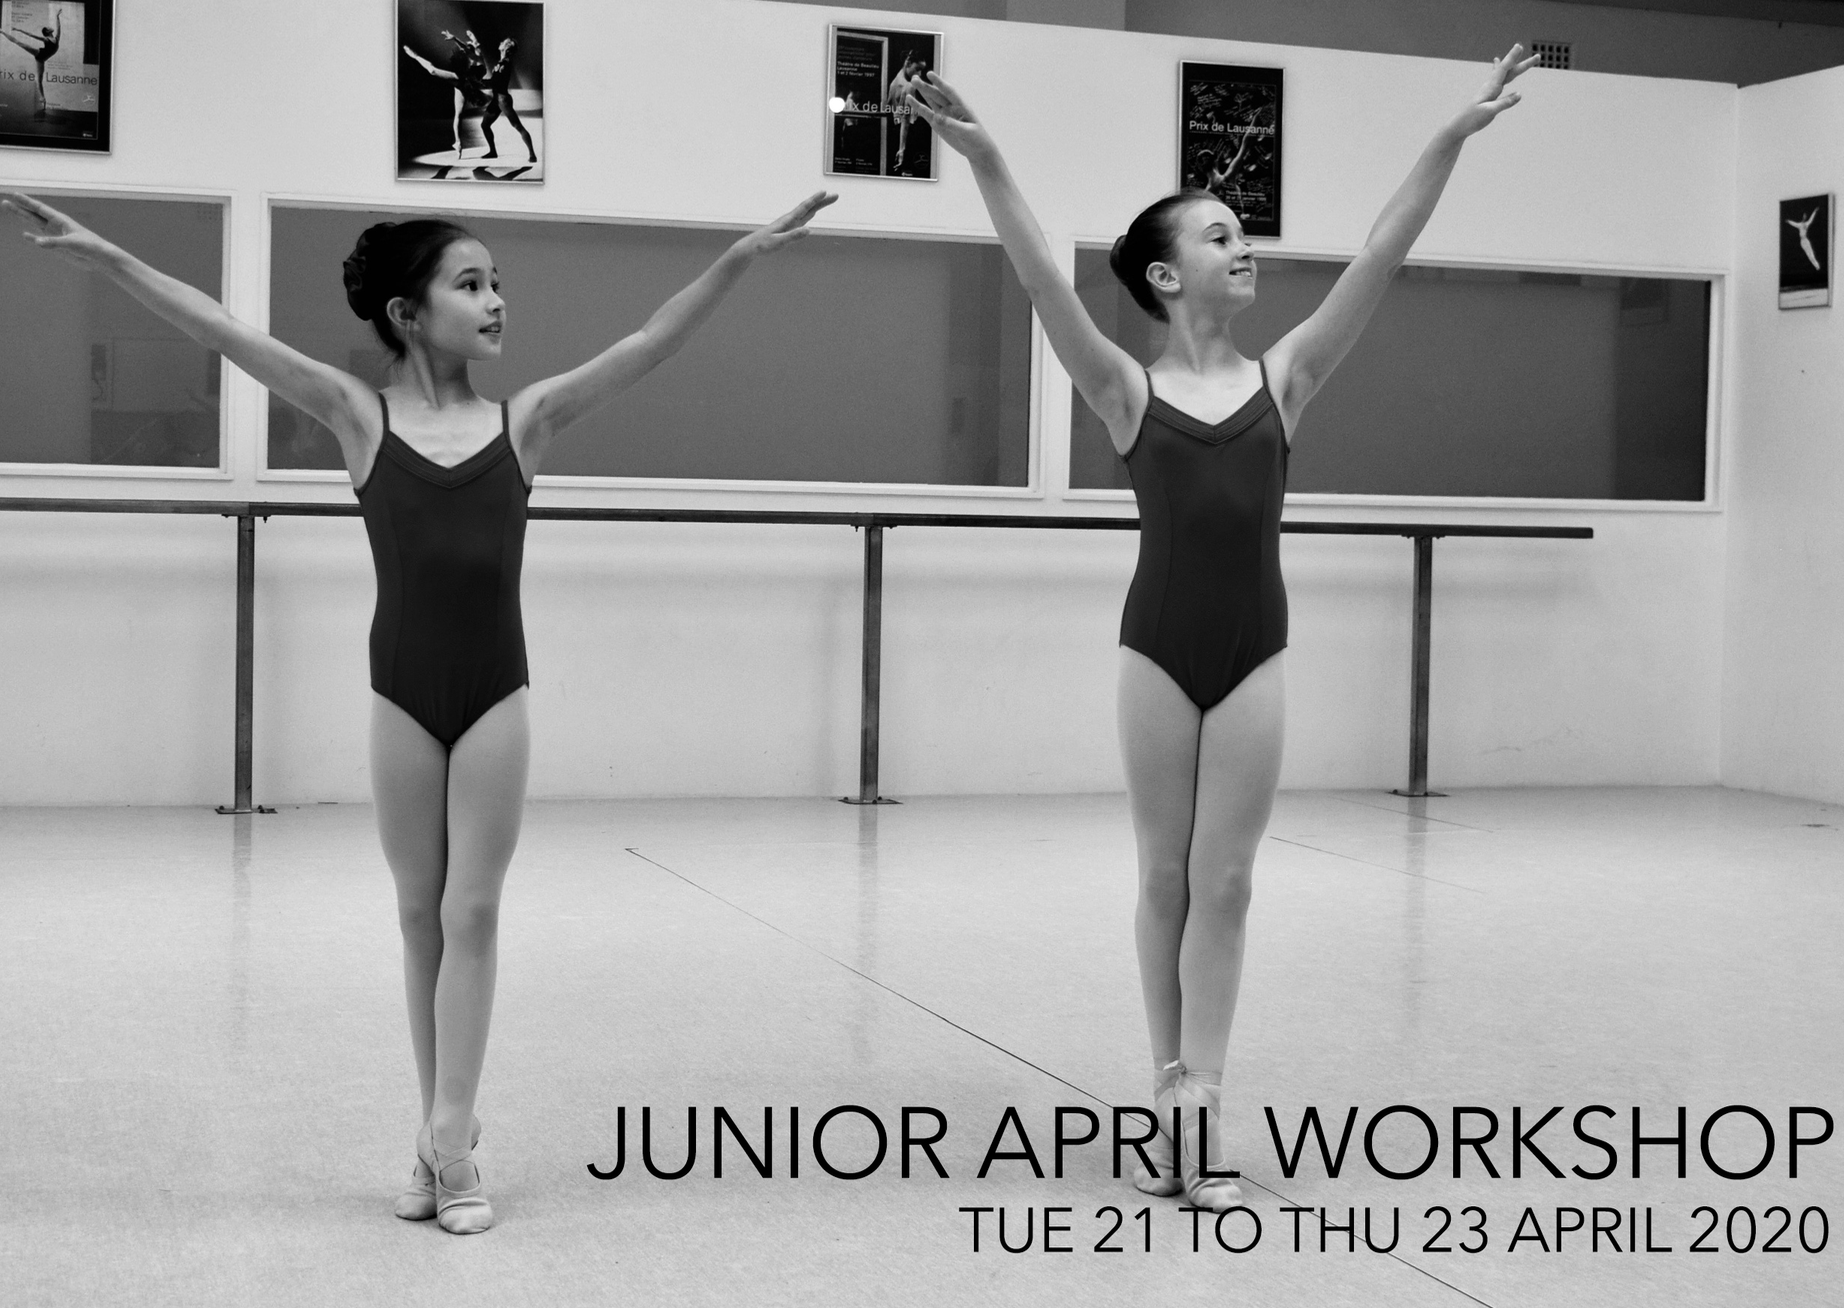 APRIL JUNIOR WORKSHOPS 2020